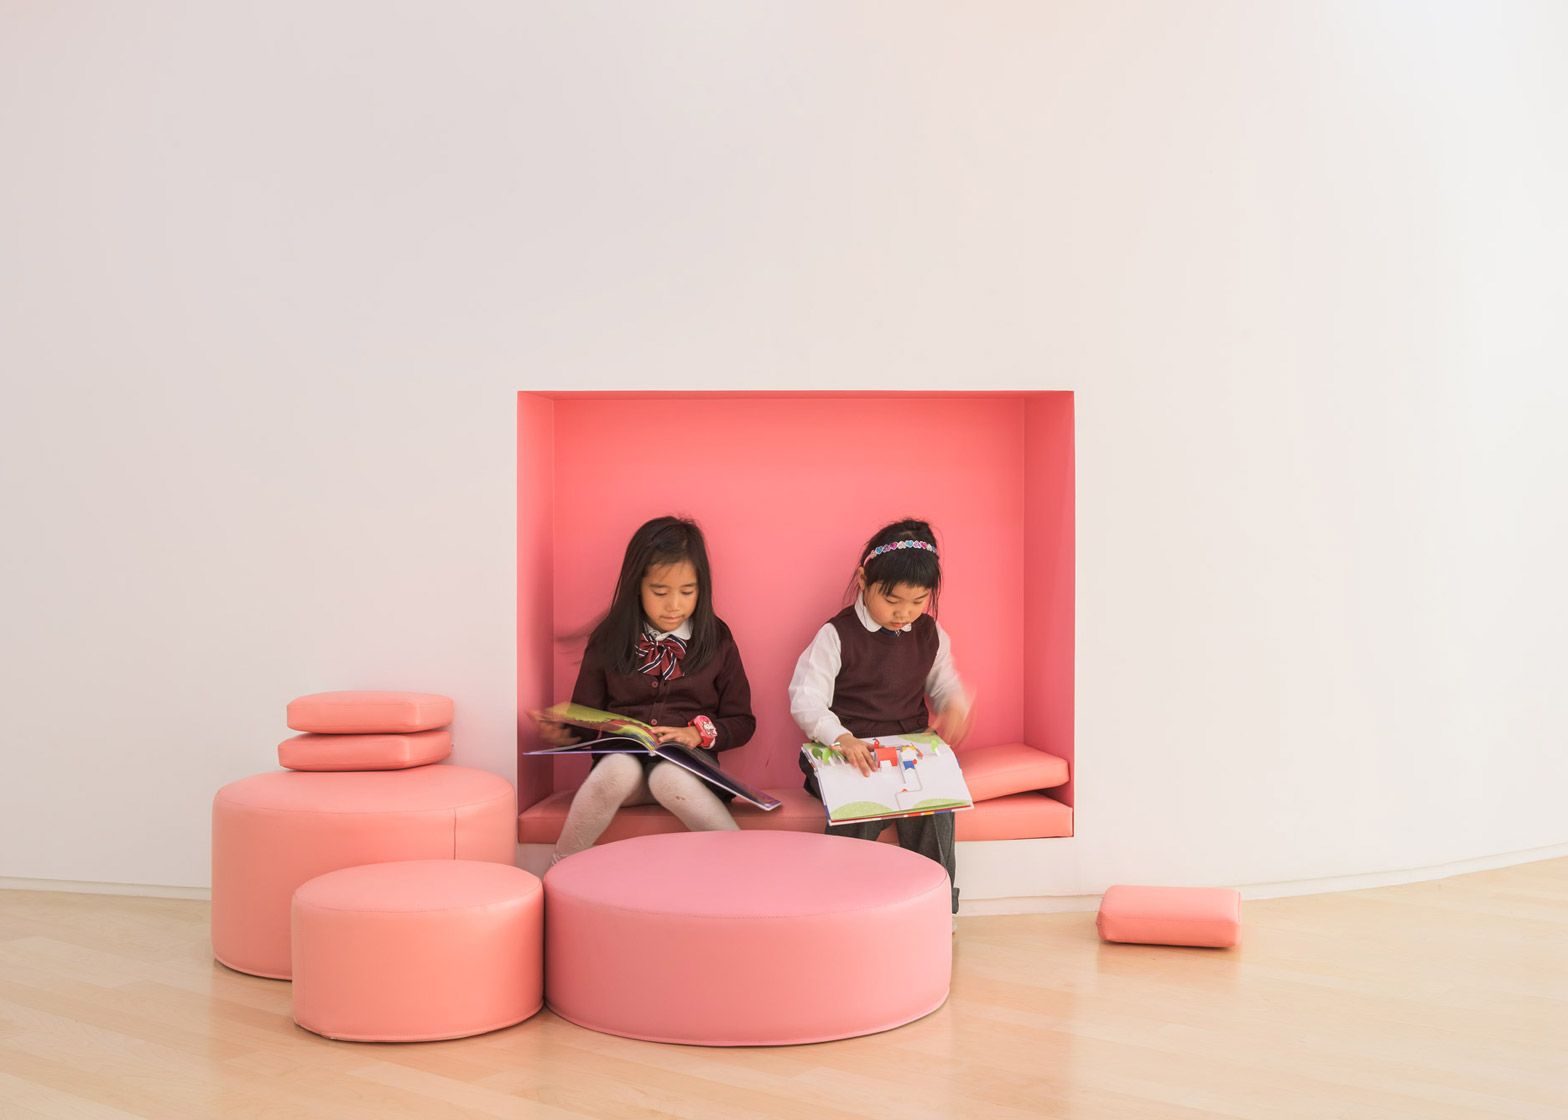 Flower Kindergarten by OA Lab features curvy classrooms